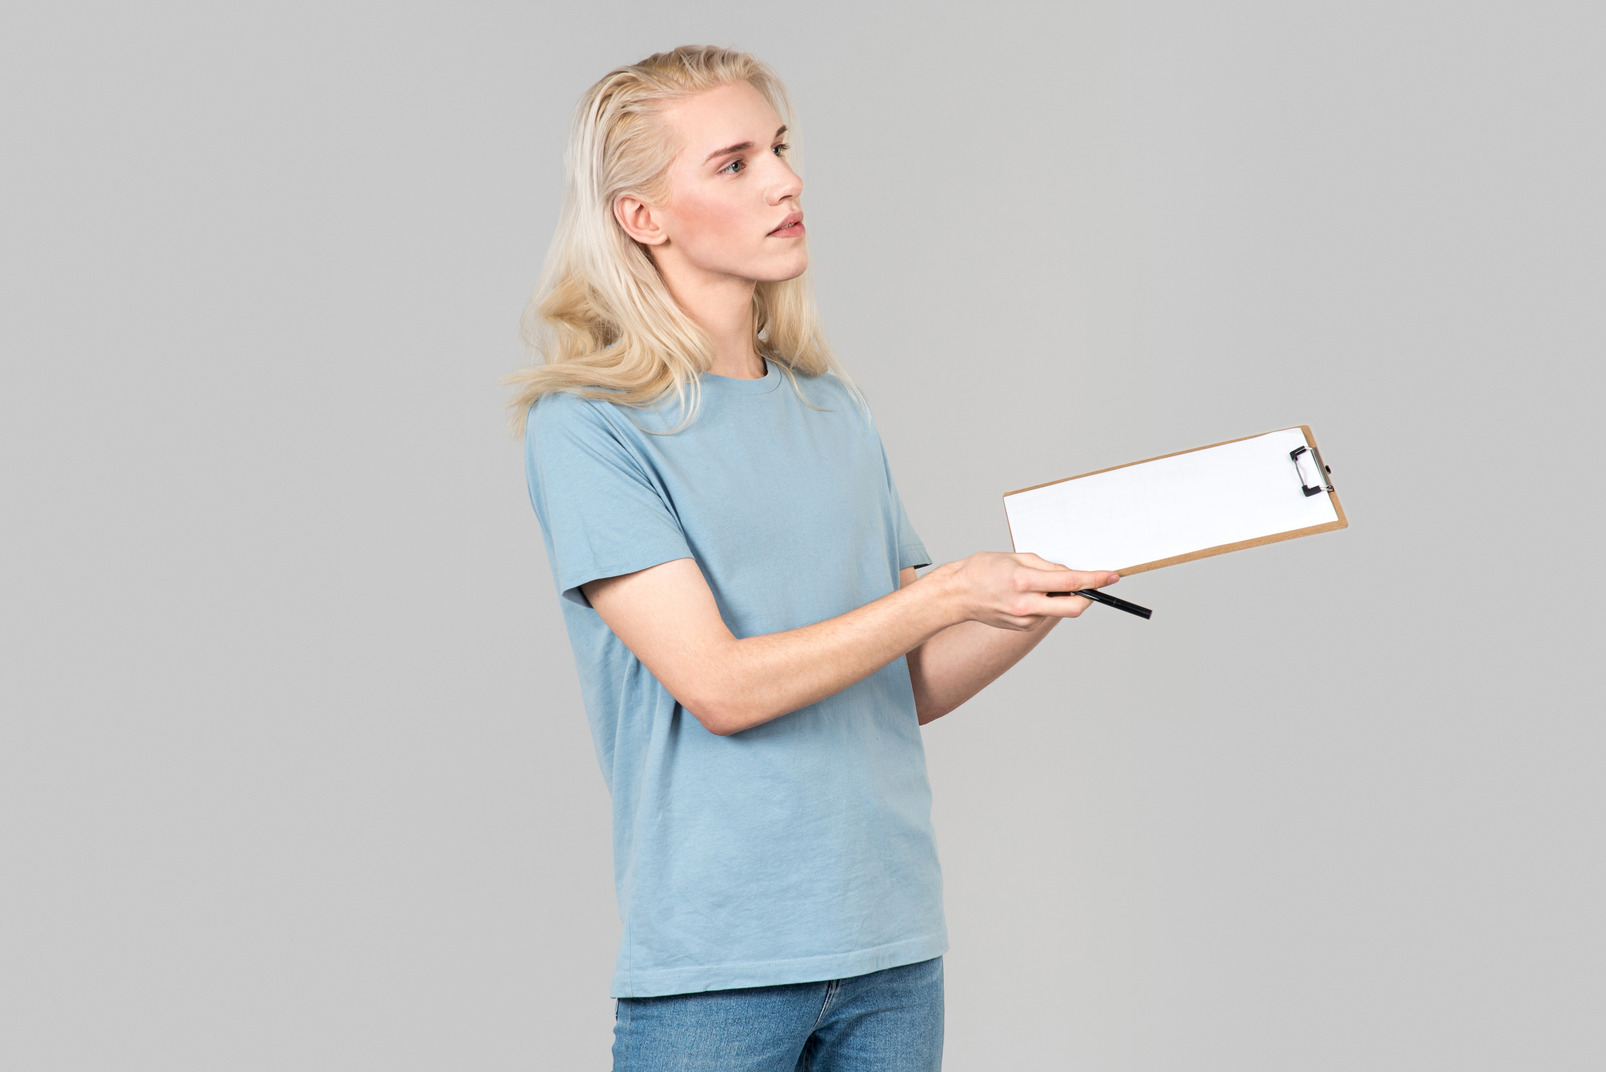 Young activist guy standing half sideways and holding folder